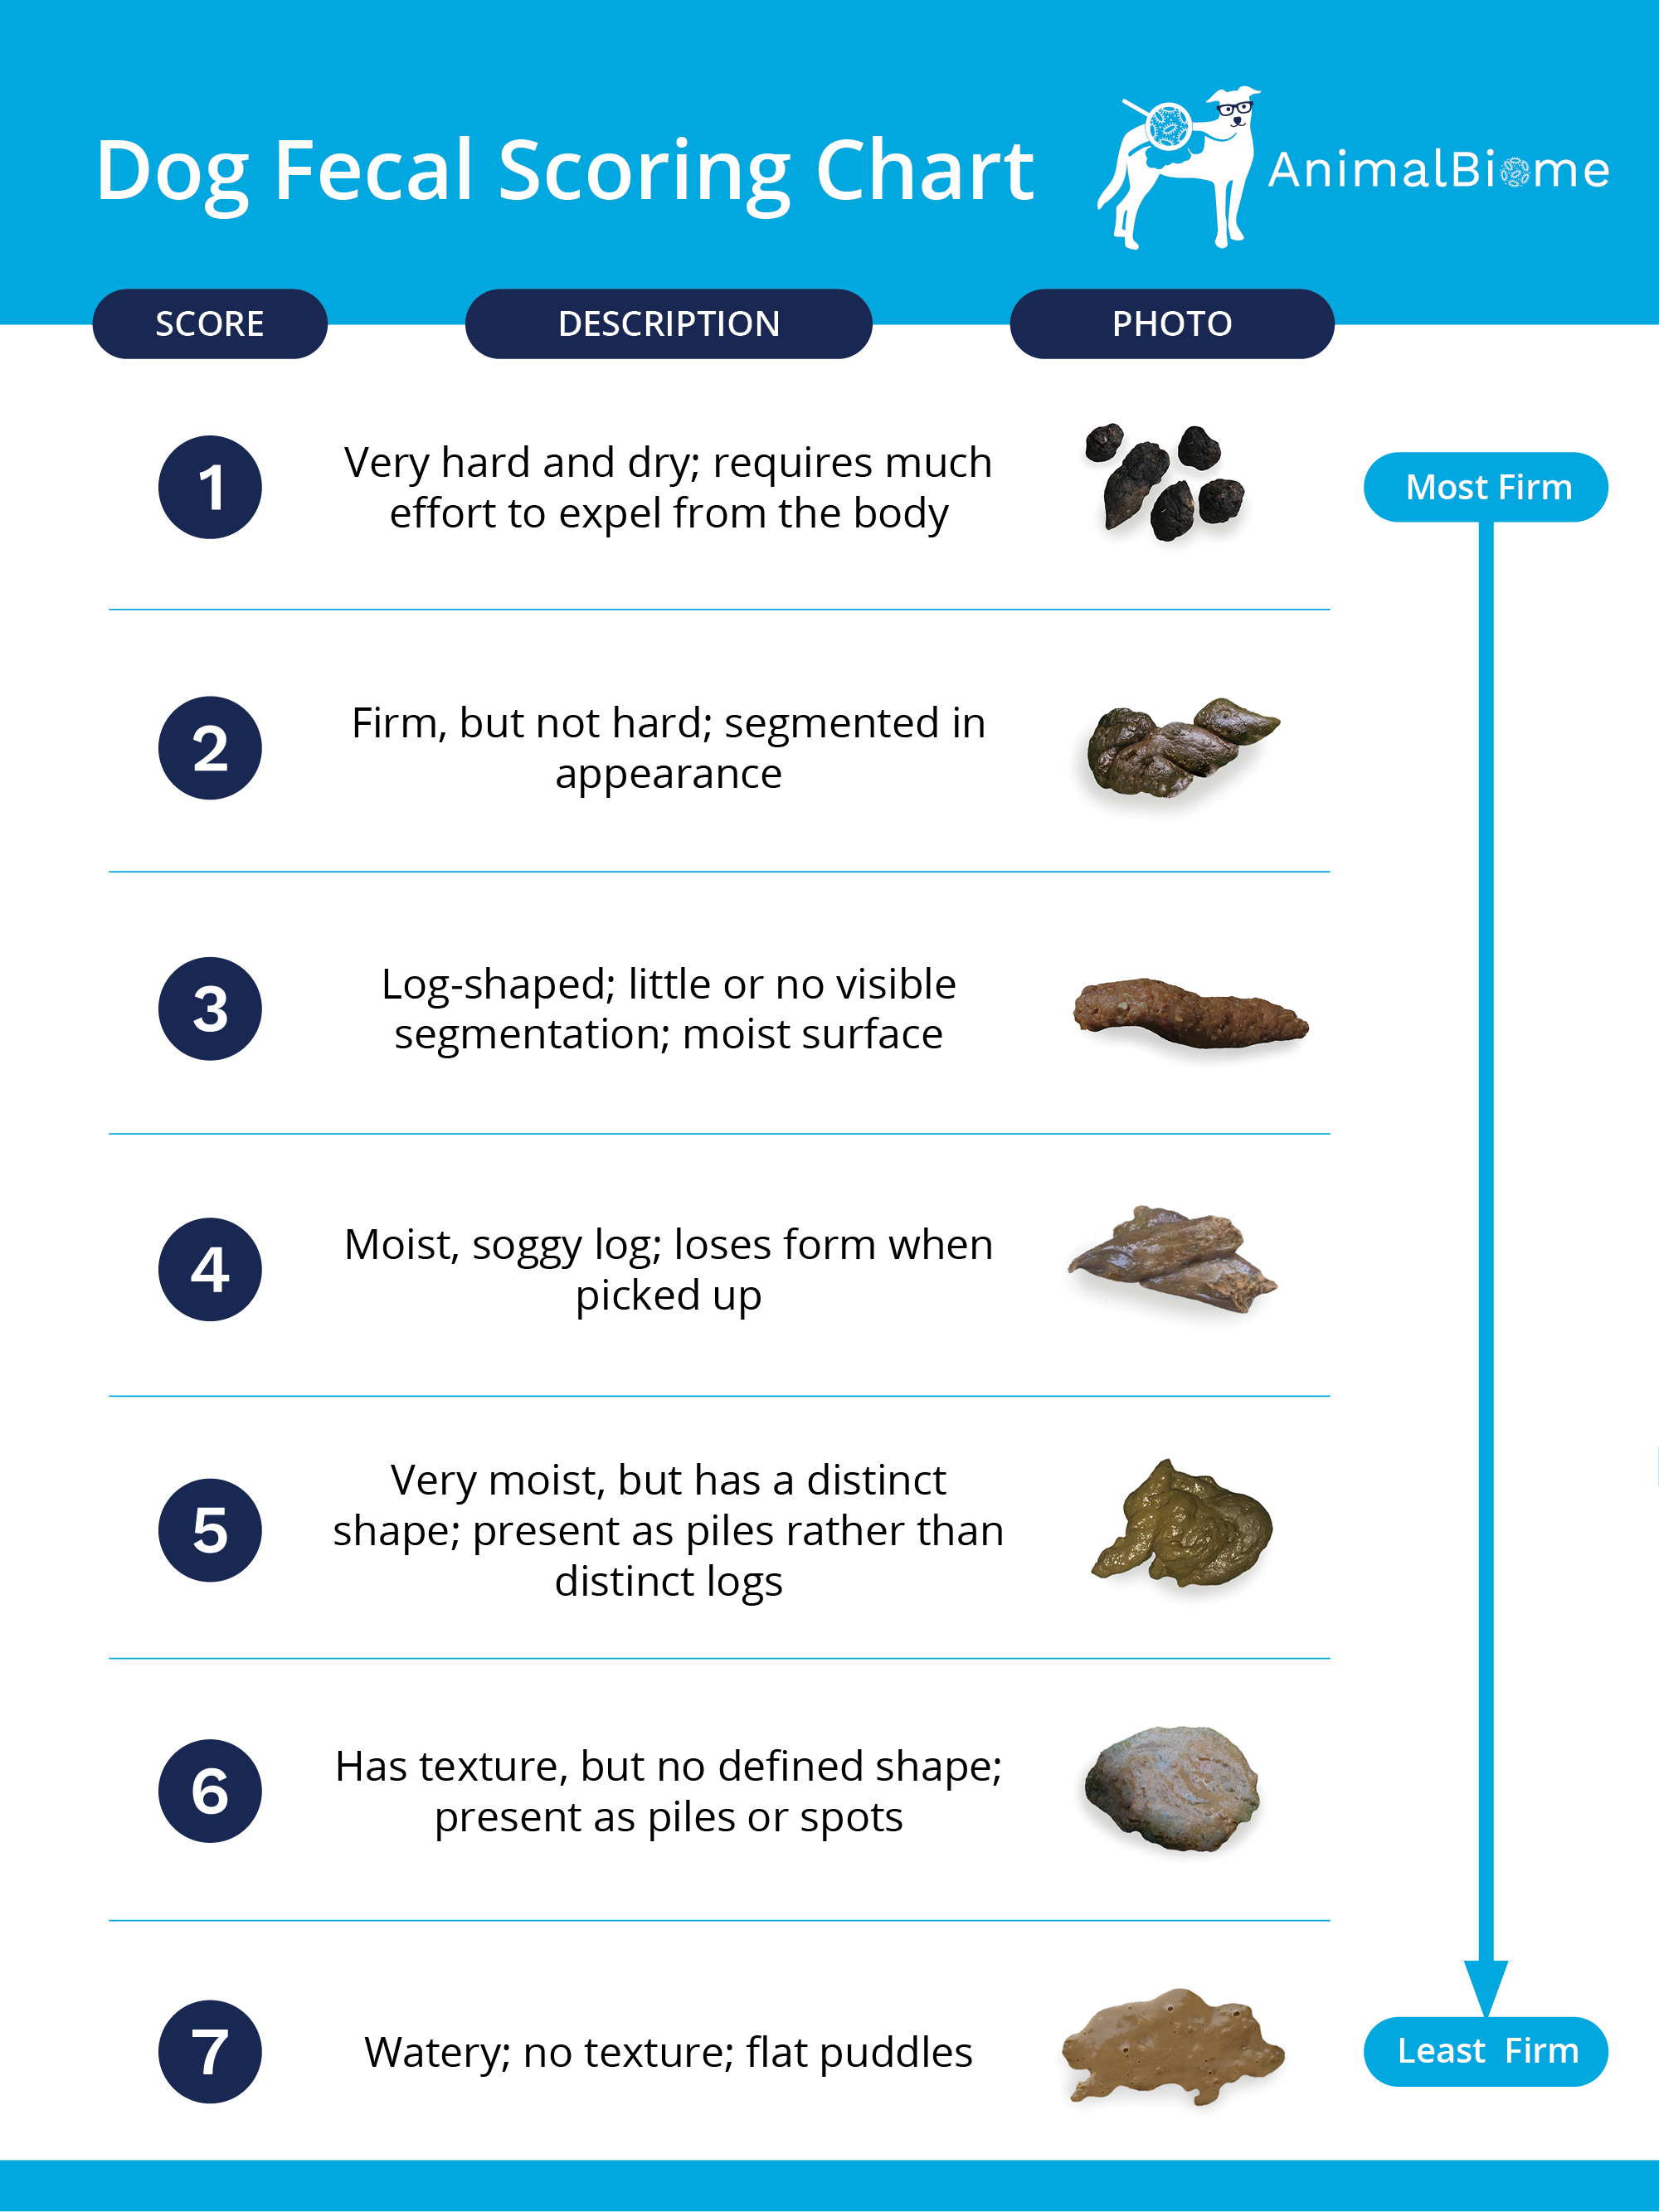 Dog Fecal Scoring Chart: What does dog poop say about your dog's health? Dog diarrhea